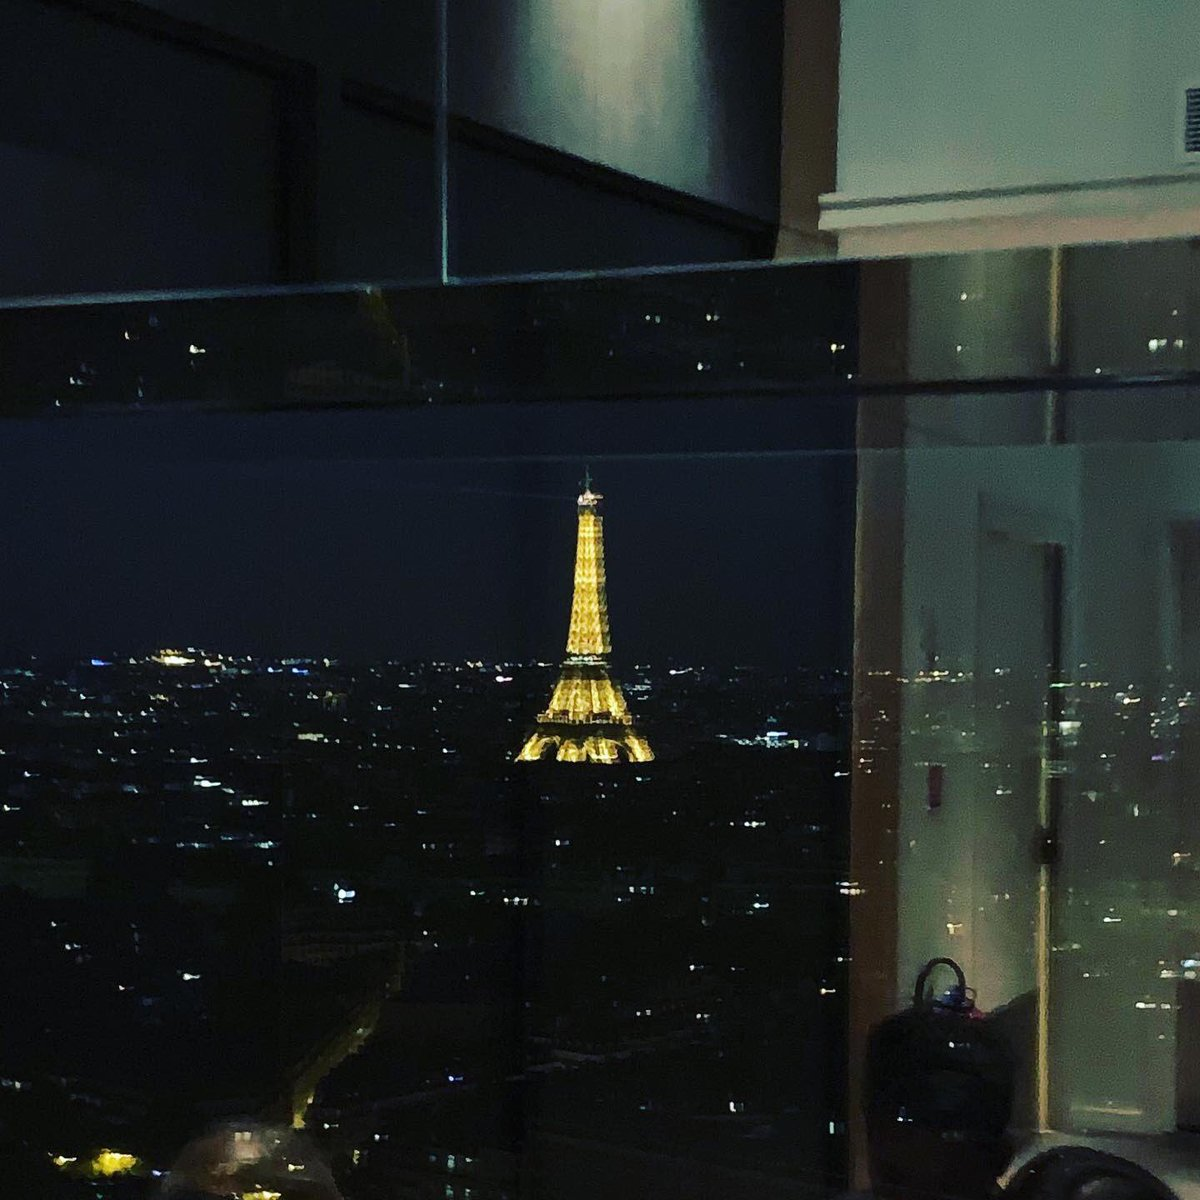 View from my hotel's rooftop bar. #Paris #ViveLaFrance 🇫🇷 https://t.co/1M7X648mb3